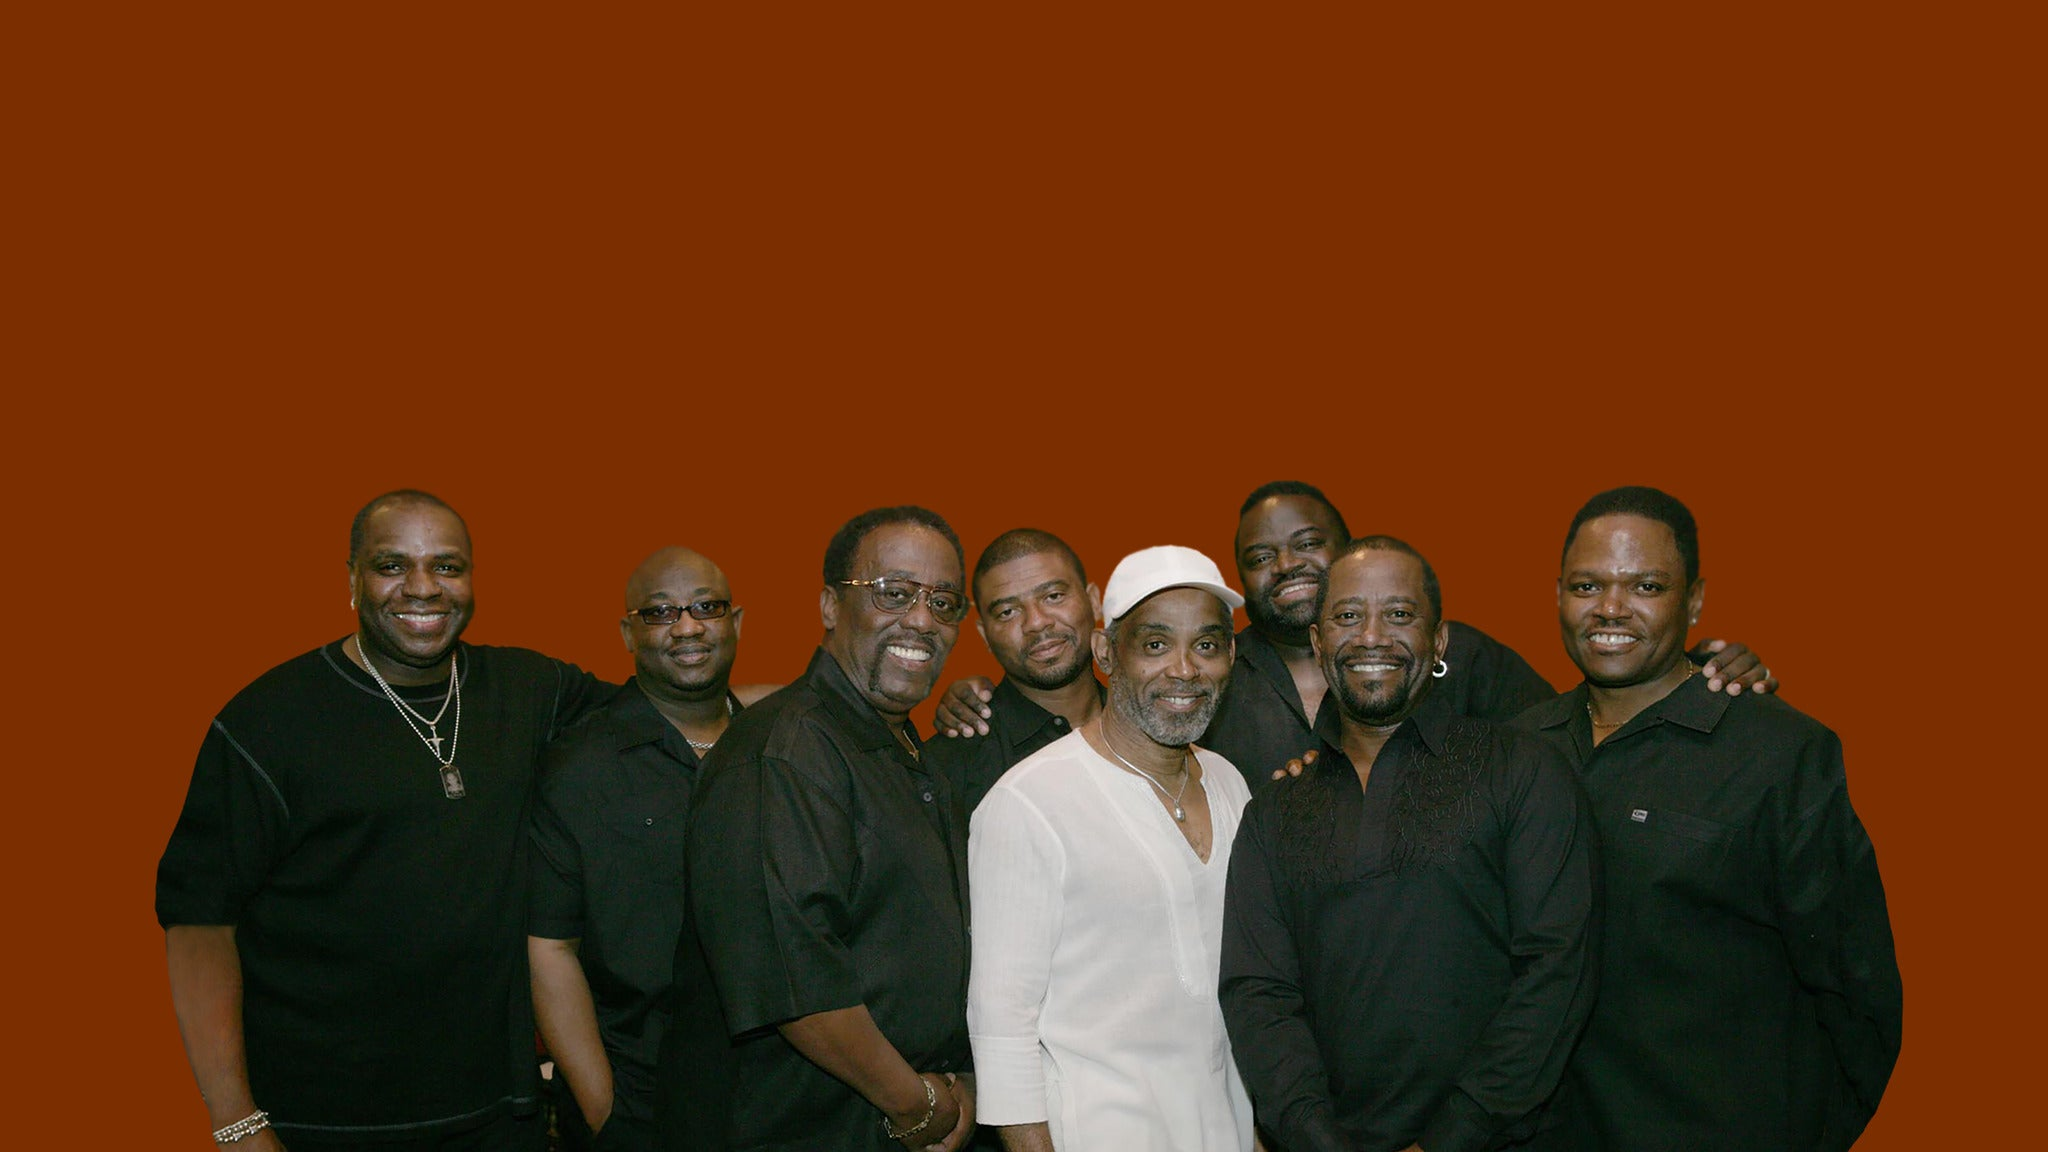 Maze featuring Frankie Beverly at Wolf Creek Amphitheater